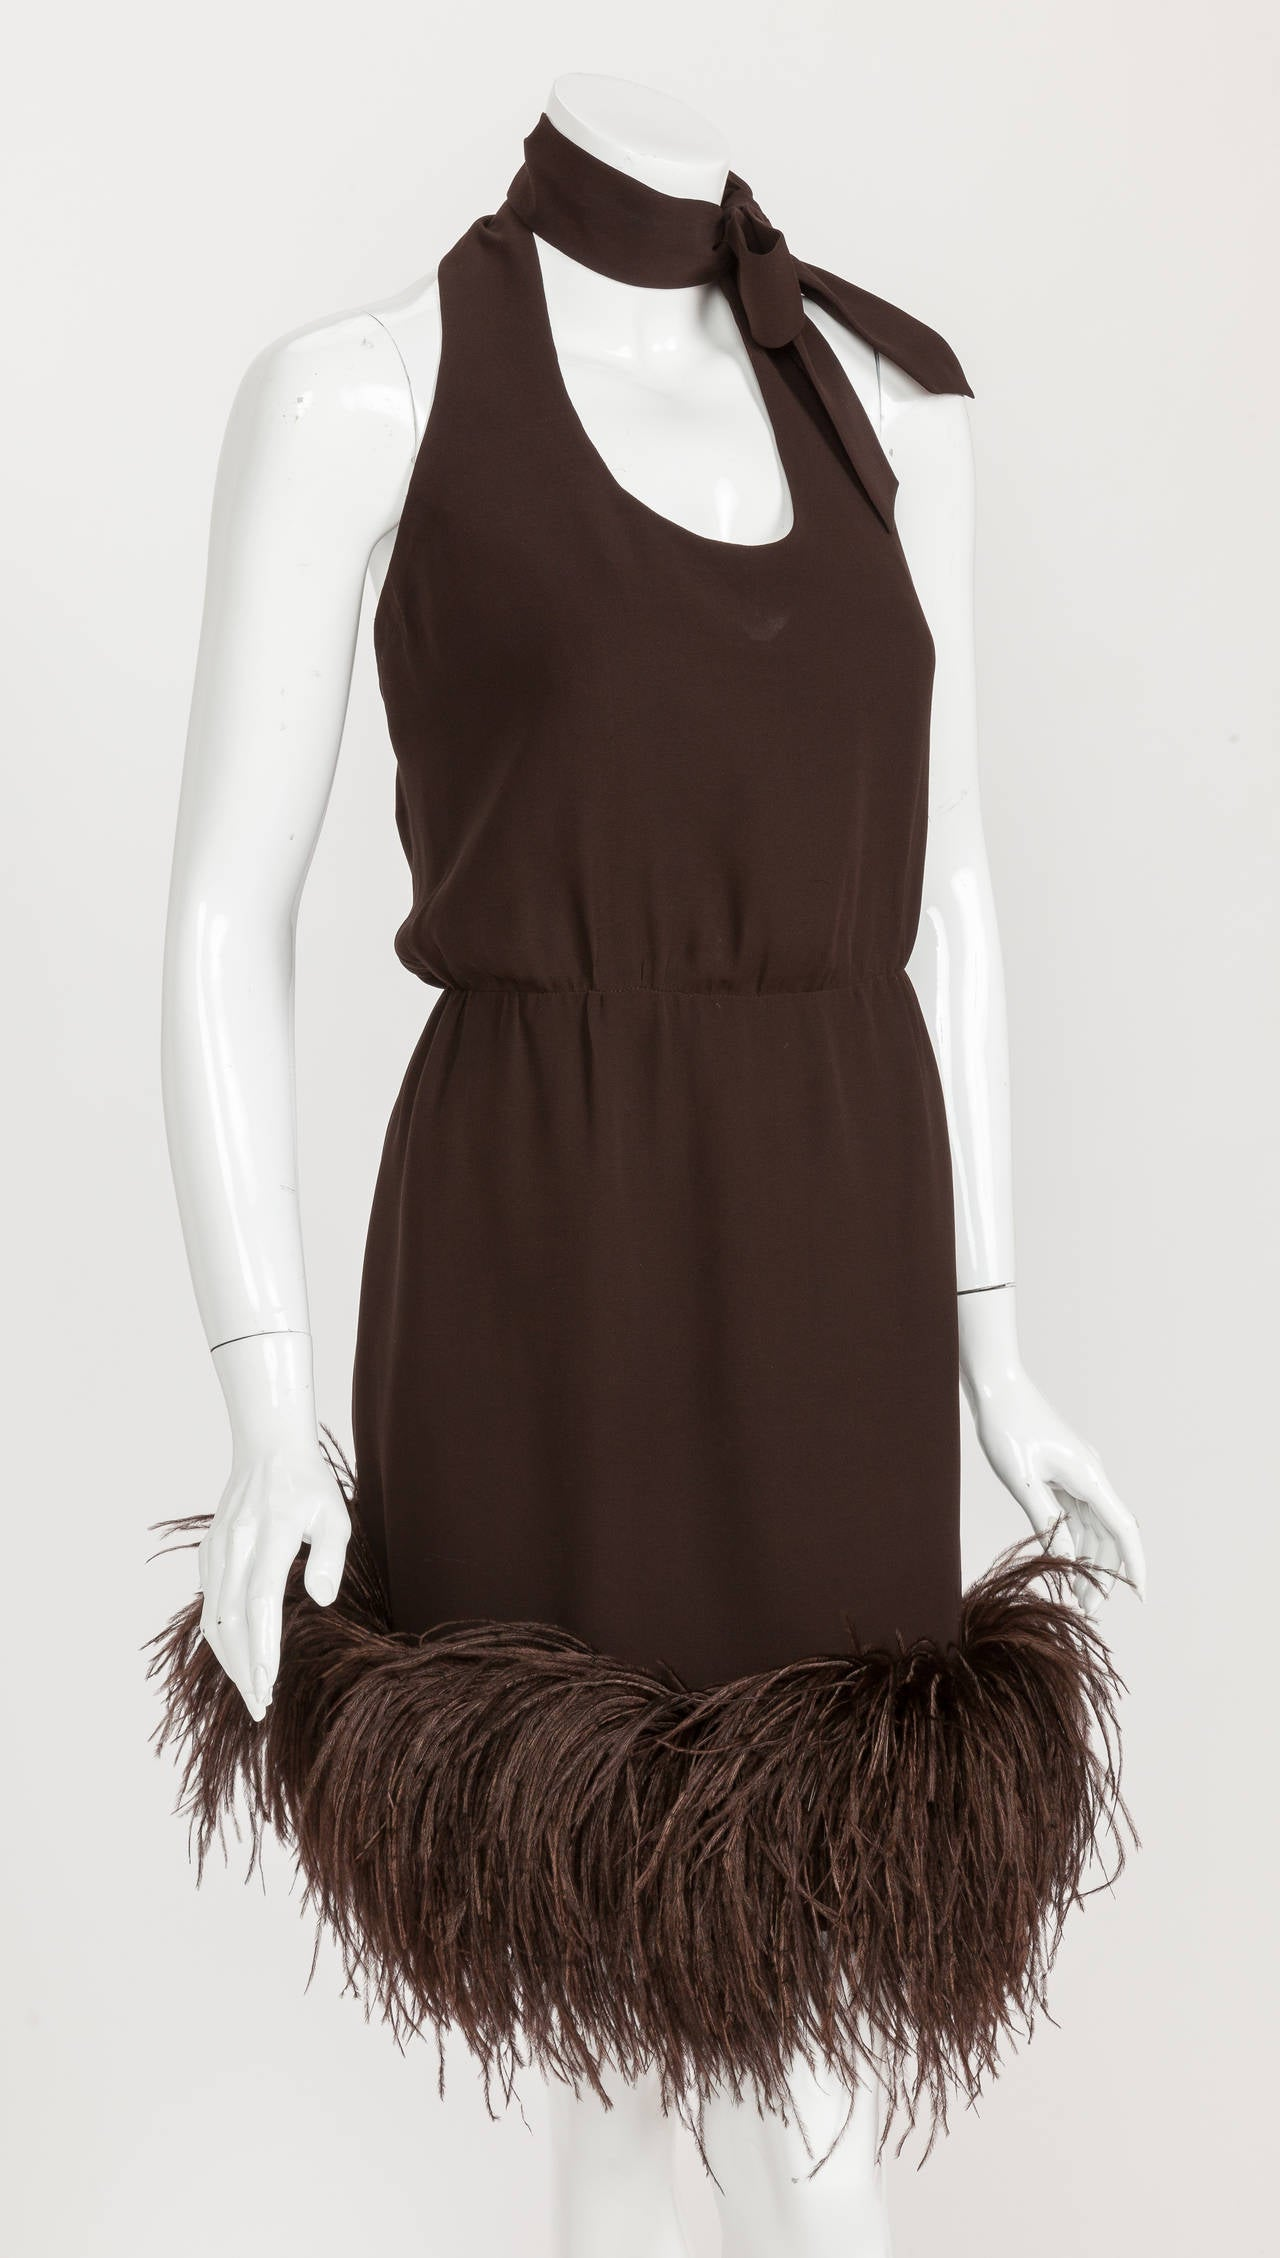 A mid-1960s Pierre Cardin haute couture brown chiffon halter dress with neck bow and Ostrich feather trim. While Pierre Cardin is credited with co-creating the Space Age in fashion, he was first and foremost a master couturier. And this mid-1960's